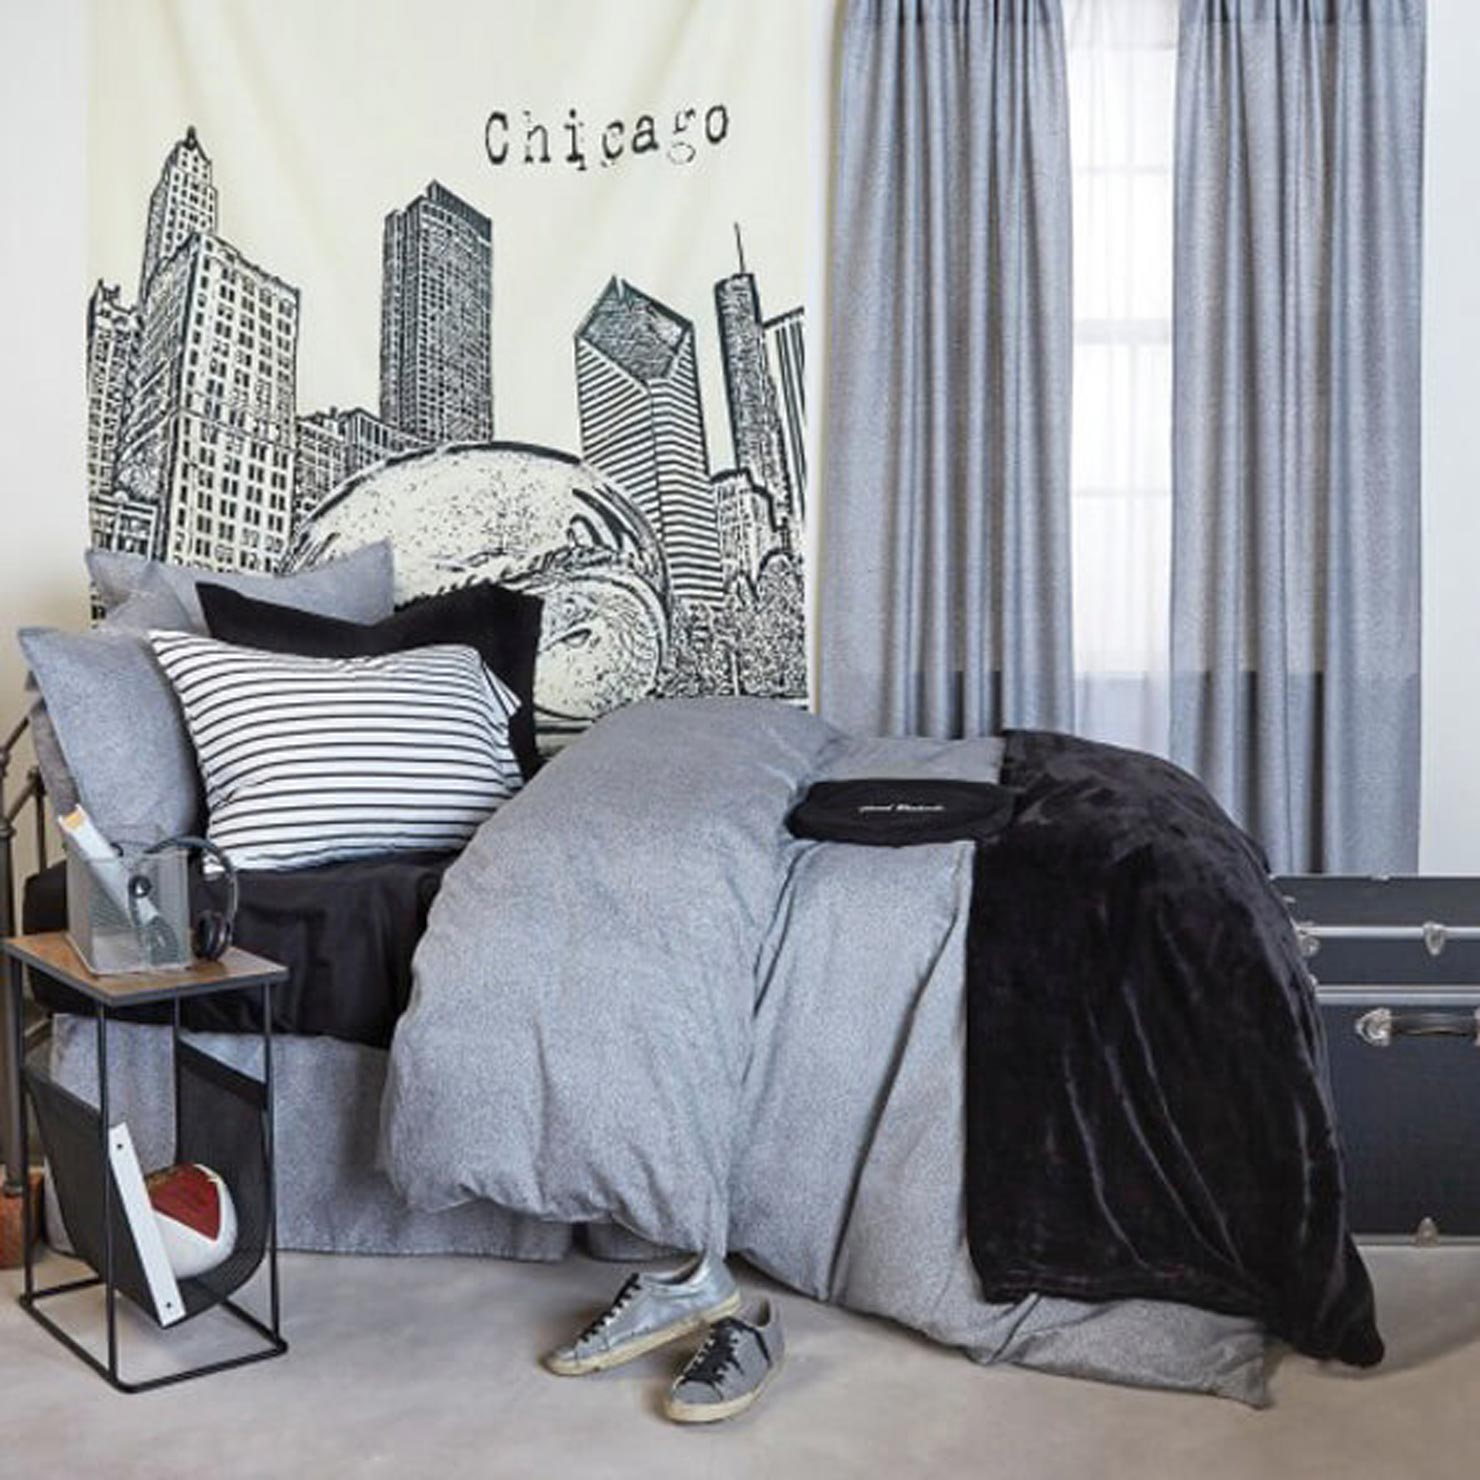 bed with a Chicago city drape next to it.